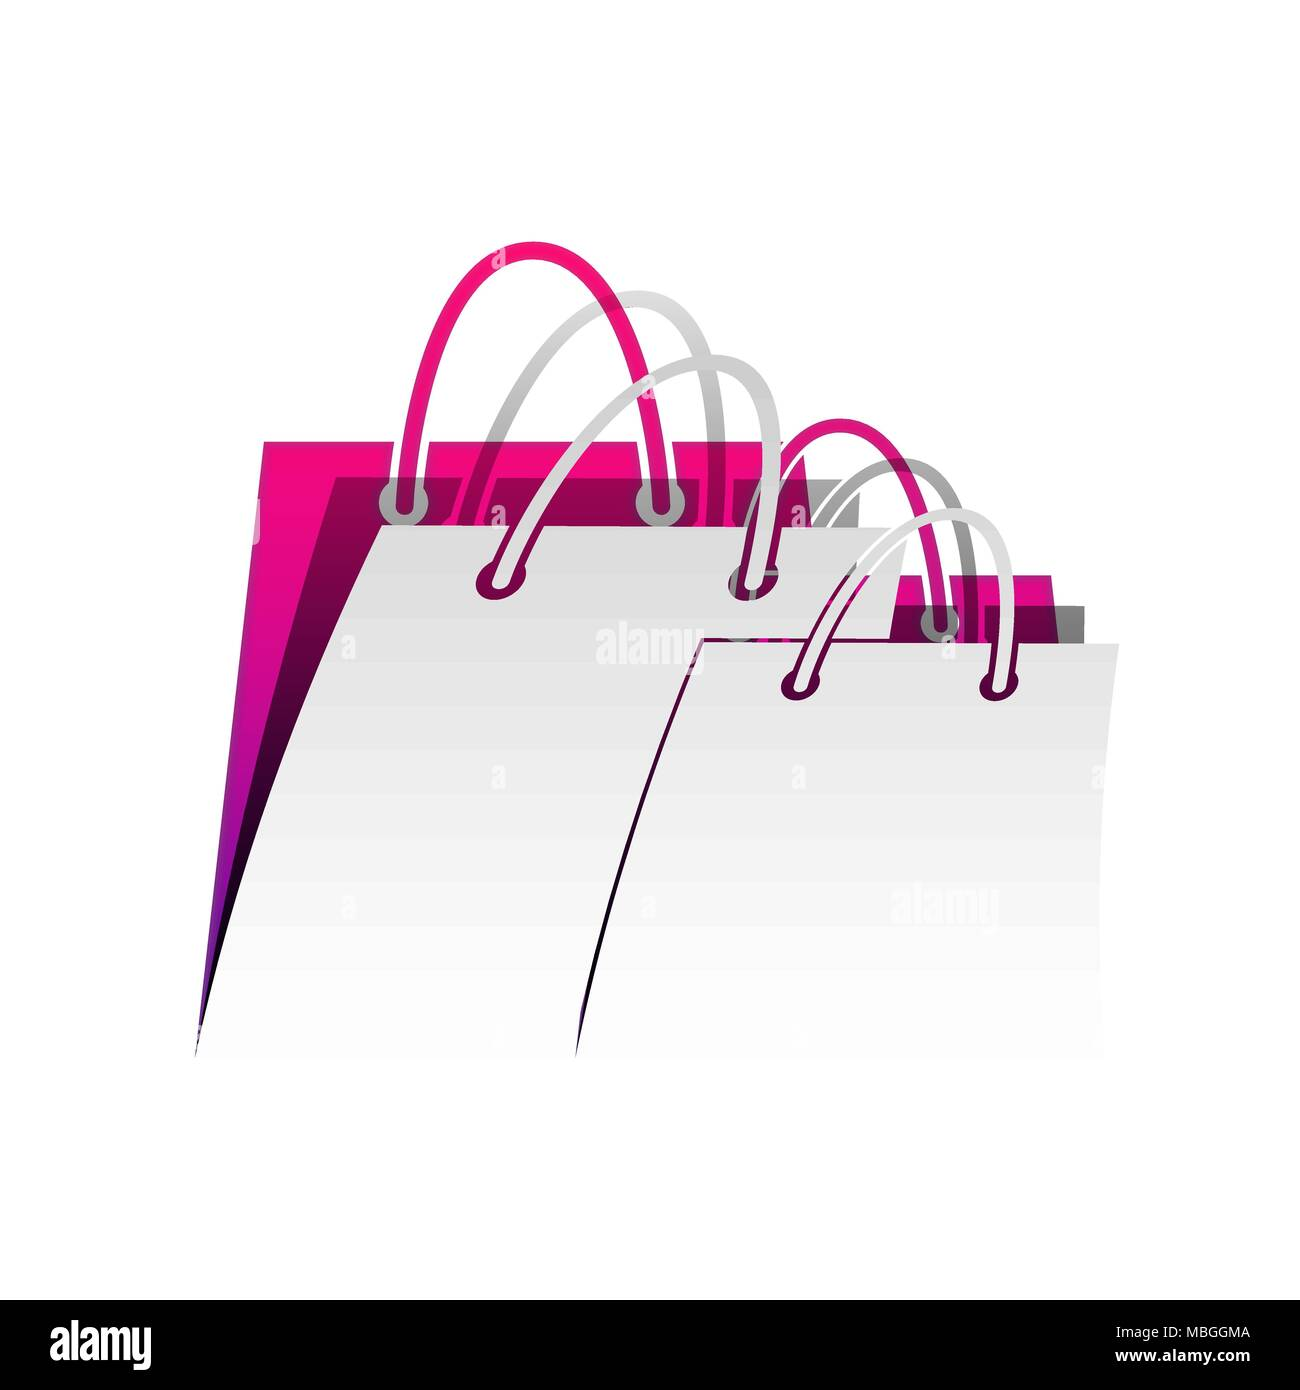 Shopping bags sign. Vector. Detachable paper with shadow at underlying layer with magenta-violet background. - Stock Image